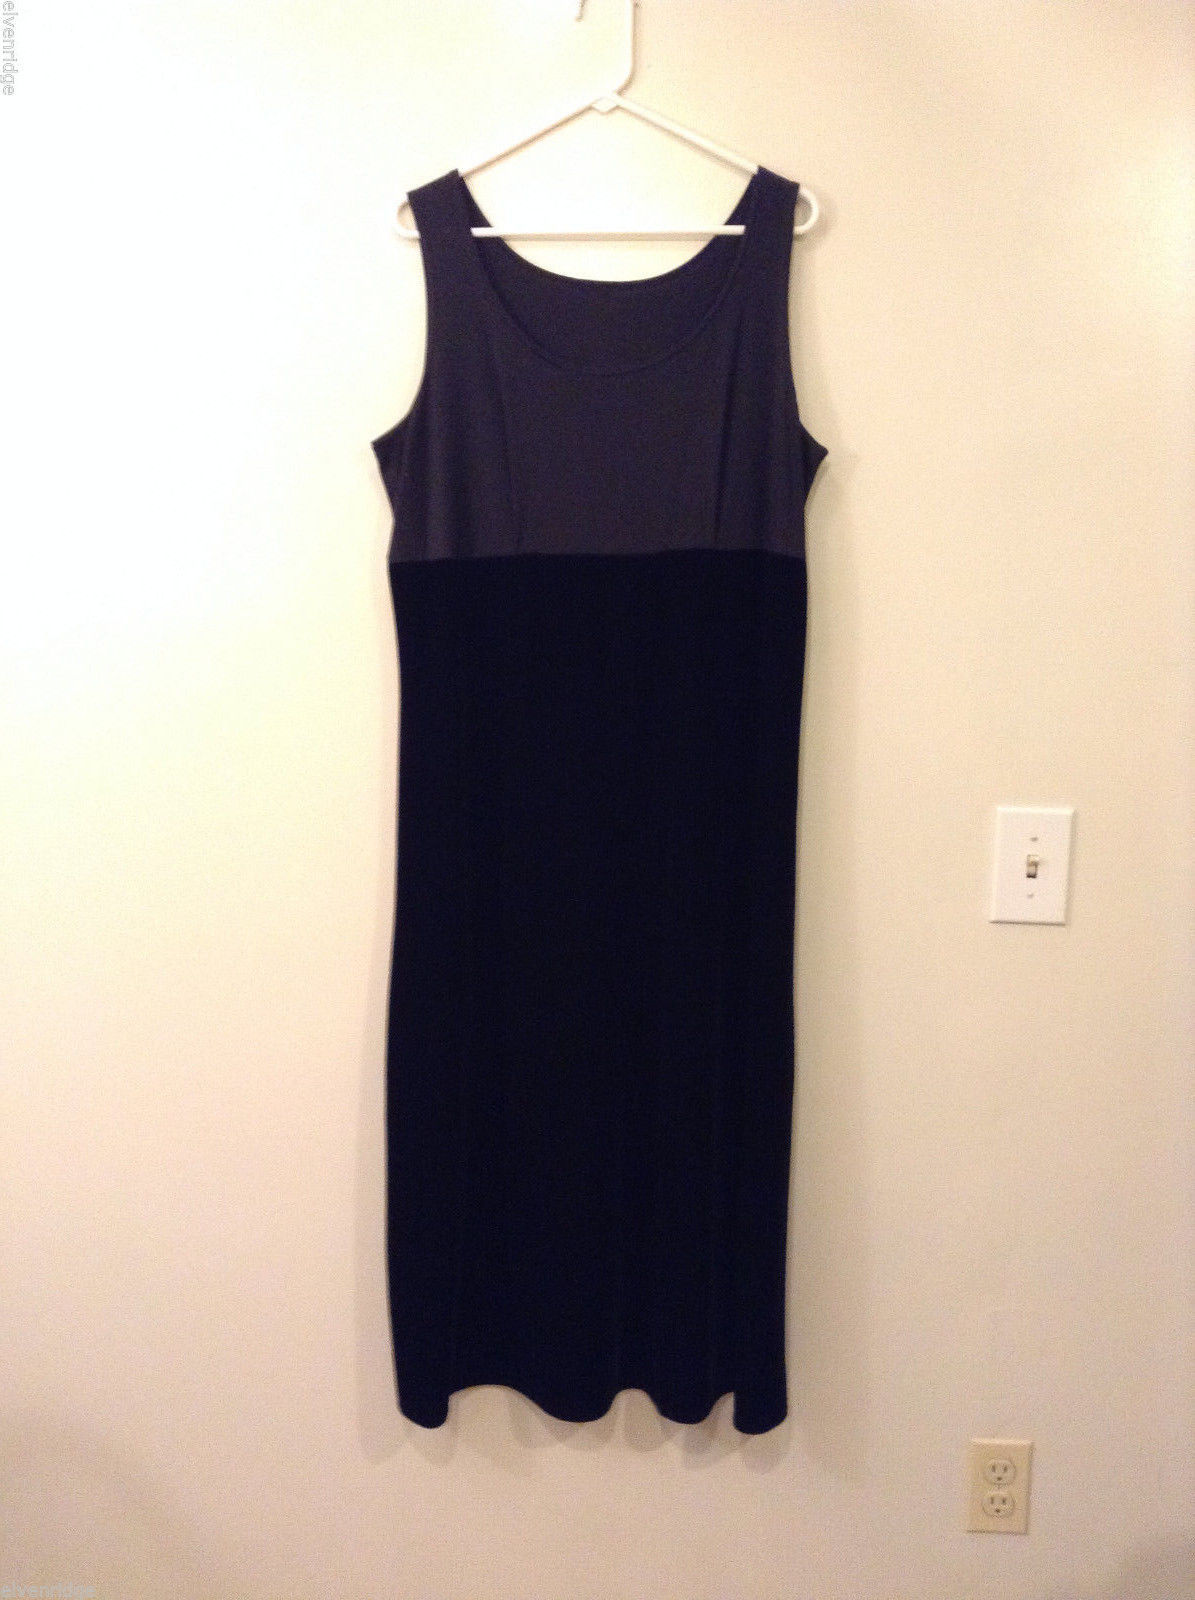 Black Sleeveless Tank Top Style Velvet Bottom Plain Fabric Top Dress, size XL